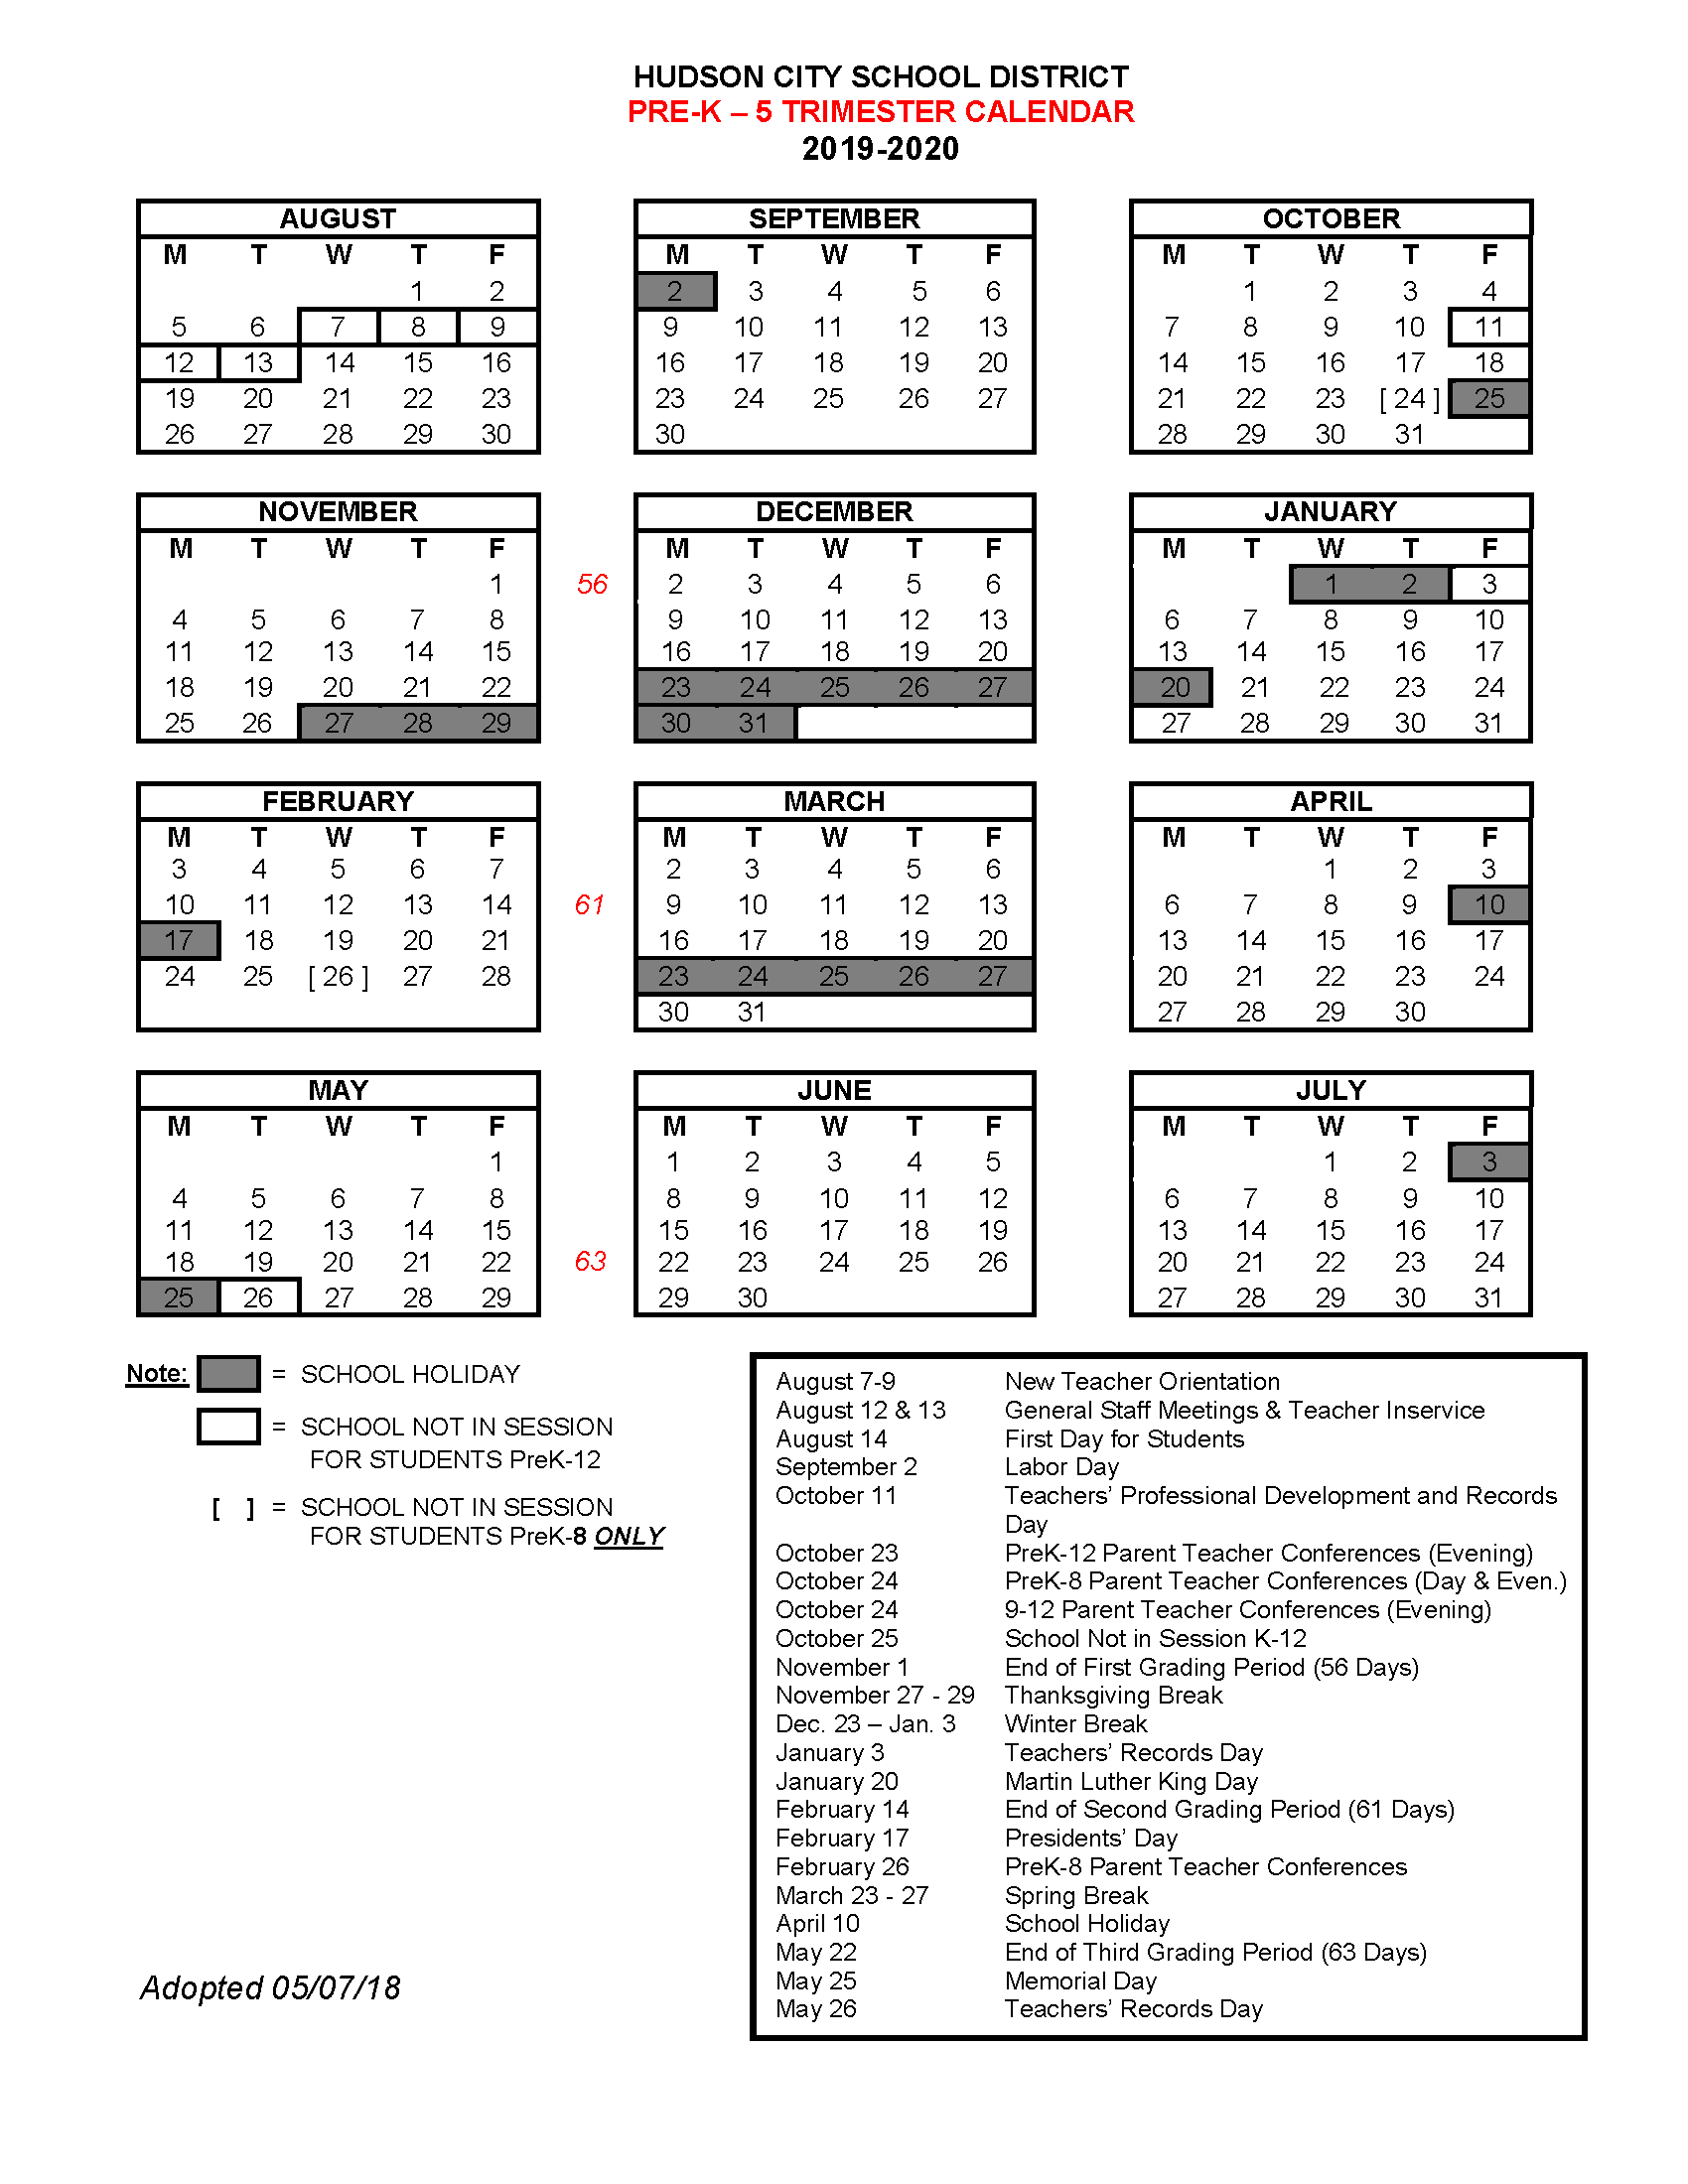 19-20 Trimester Calendar for Prek-5